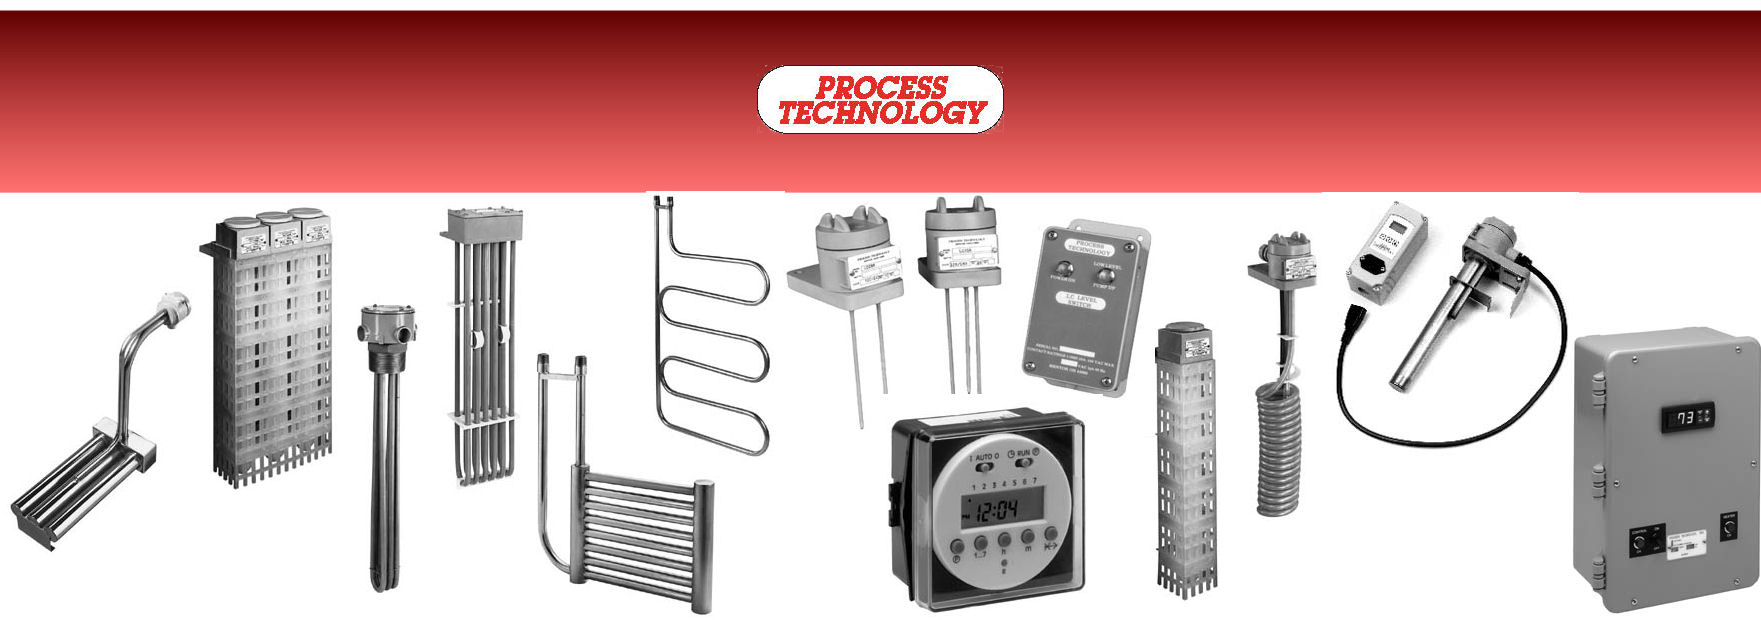 Process Technology Immersion Heaters